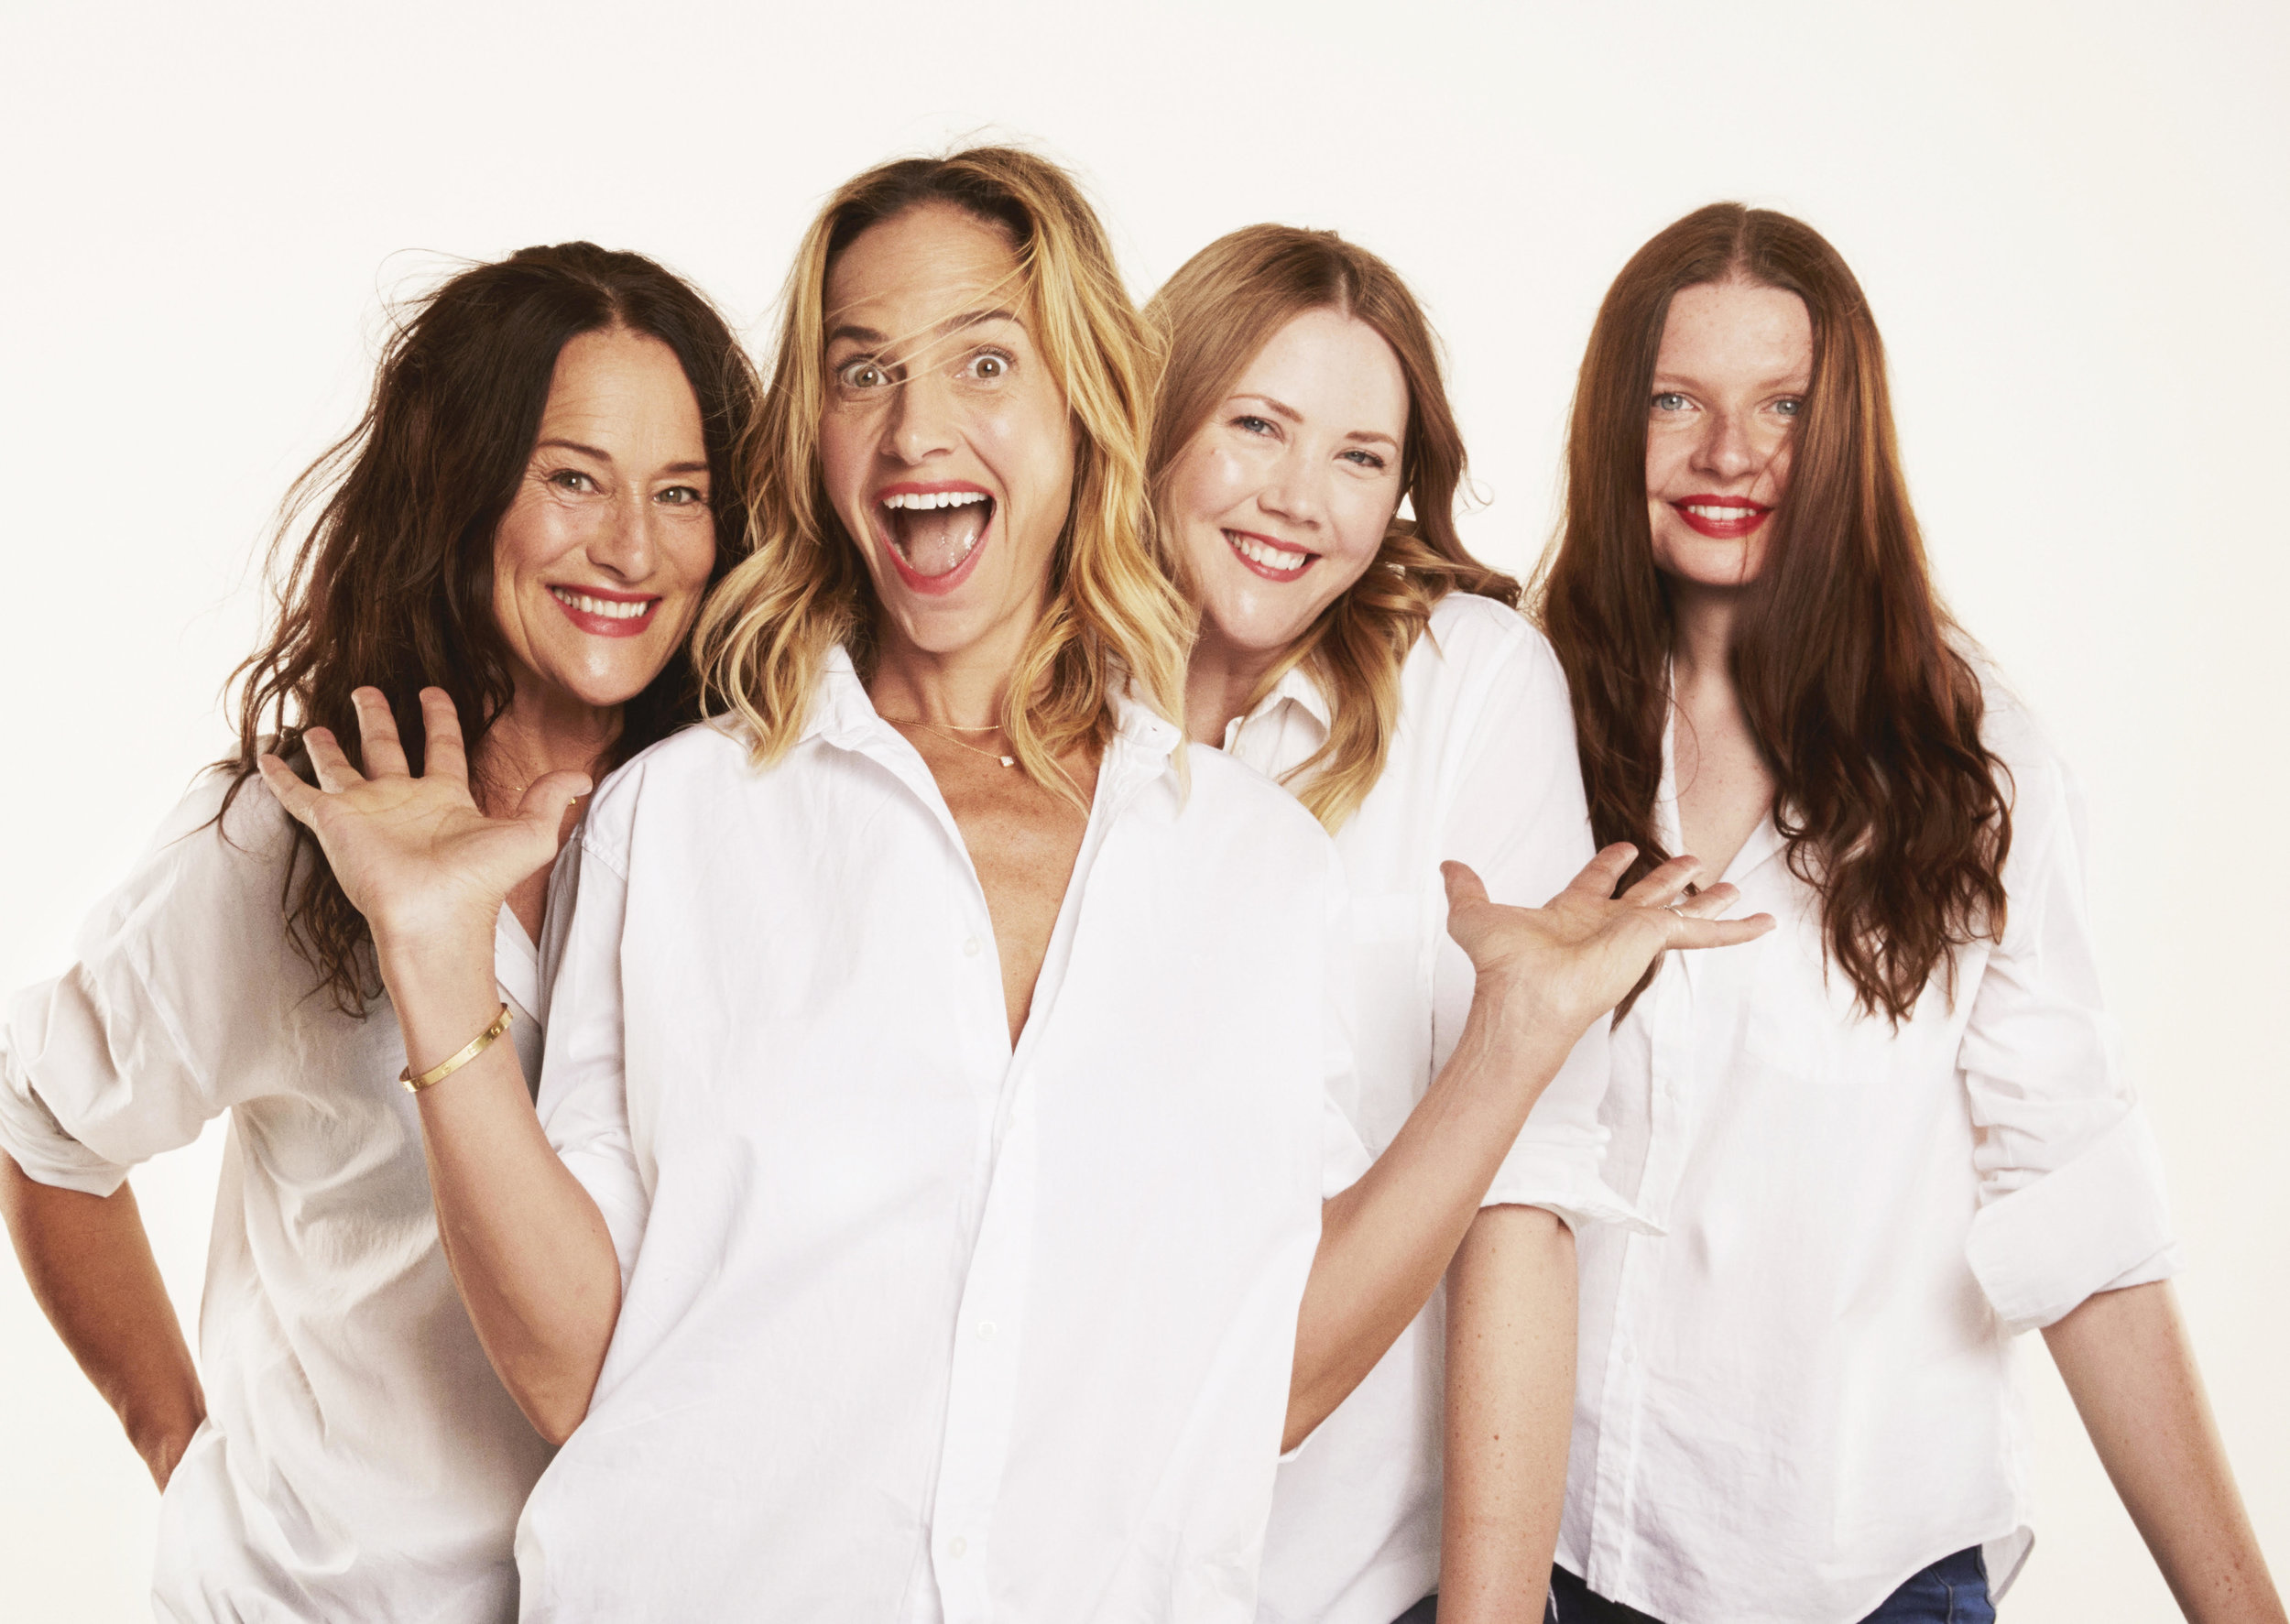 Pictured above from left to right: Casey Gouveia, Wendy Euler, Emilie Maslow and Tereza Janáková